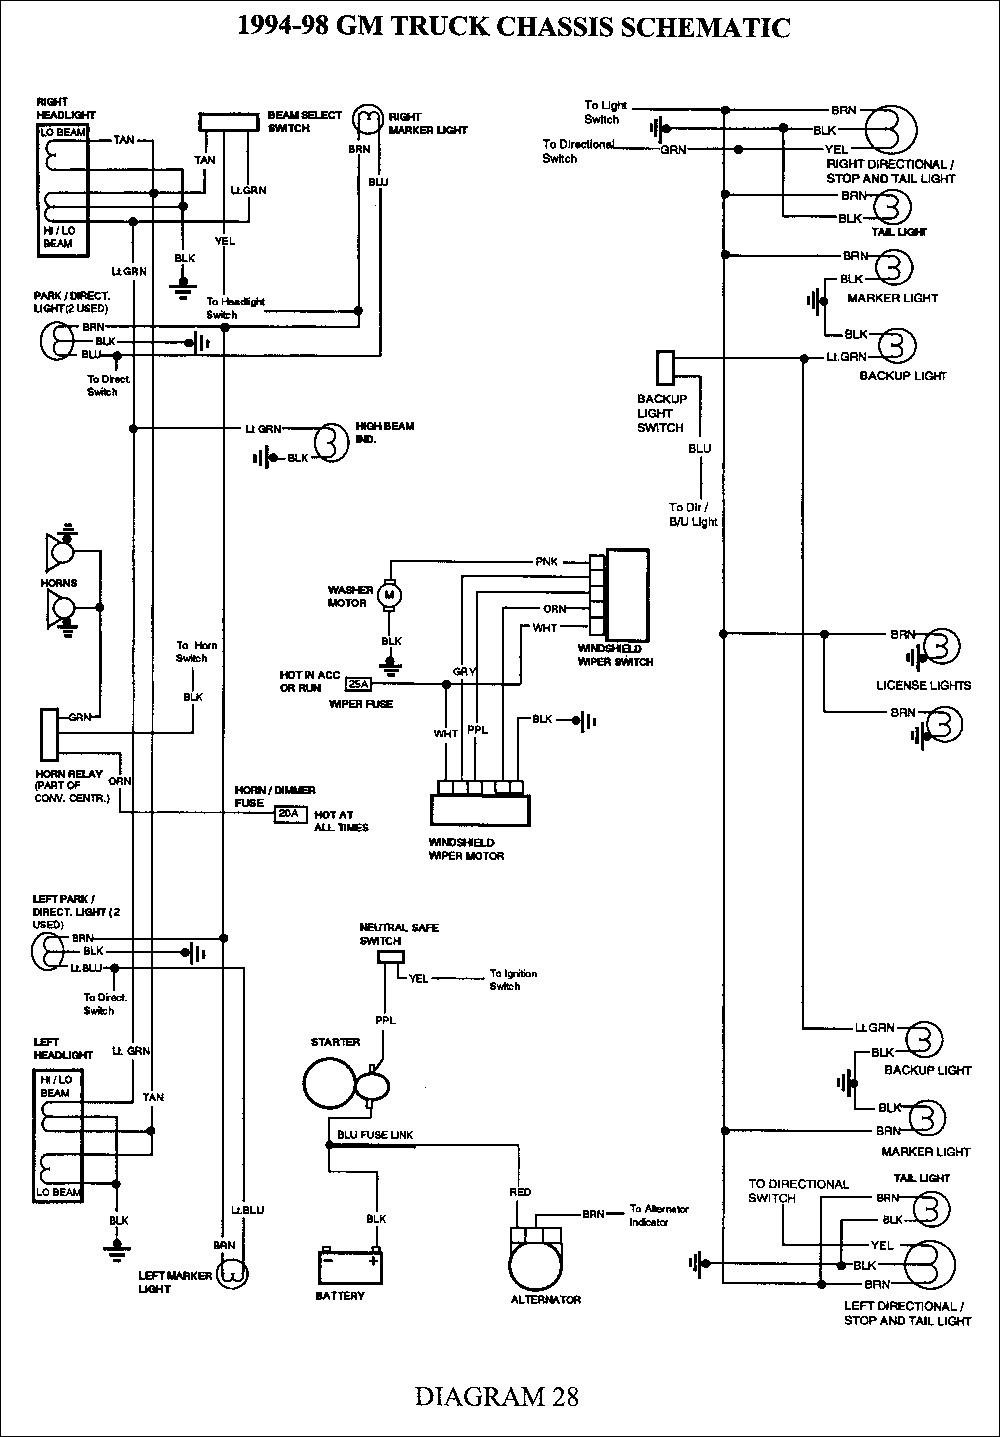 1999 Chevy S10 Wiring Harness Diagram Library Diagram2001 Data